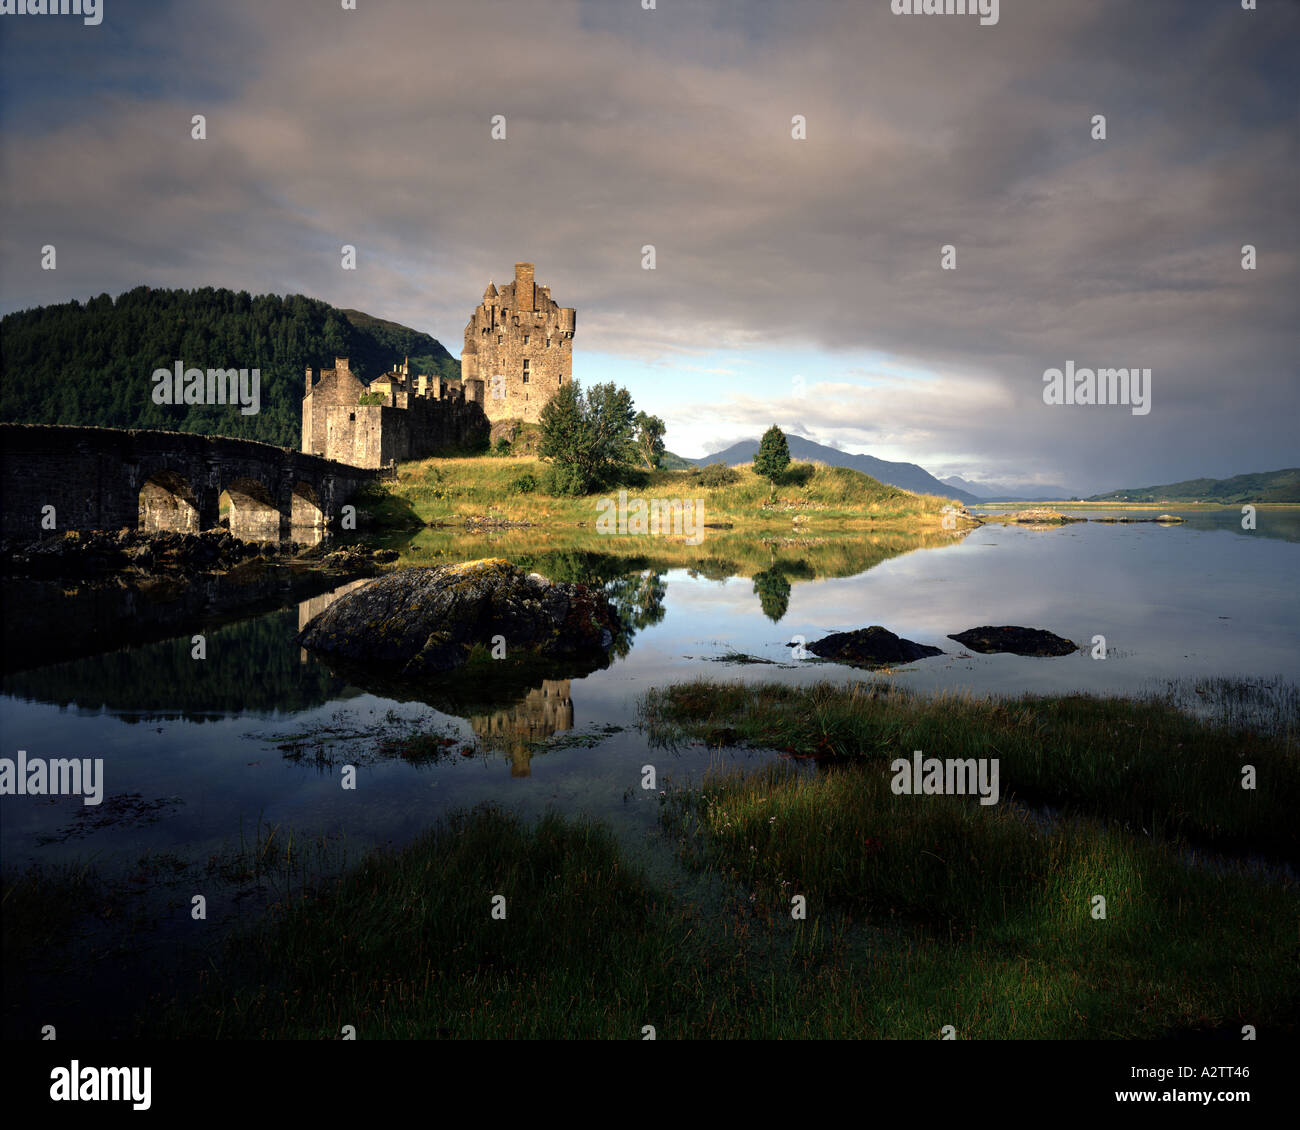 GB - SCOTLAND: Eilean Donan Castle and Loch Alsh - Stock Image